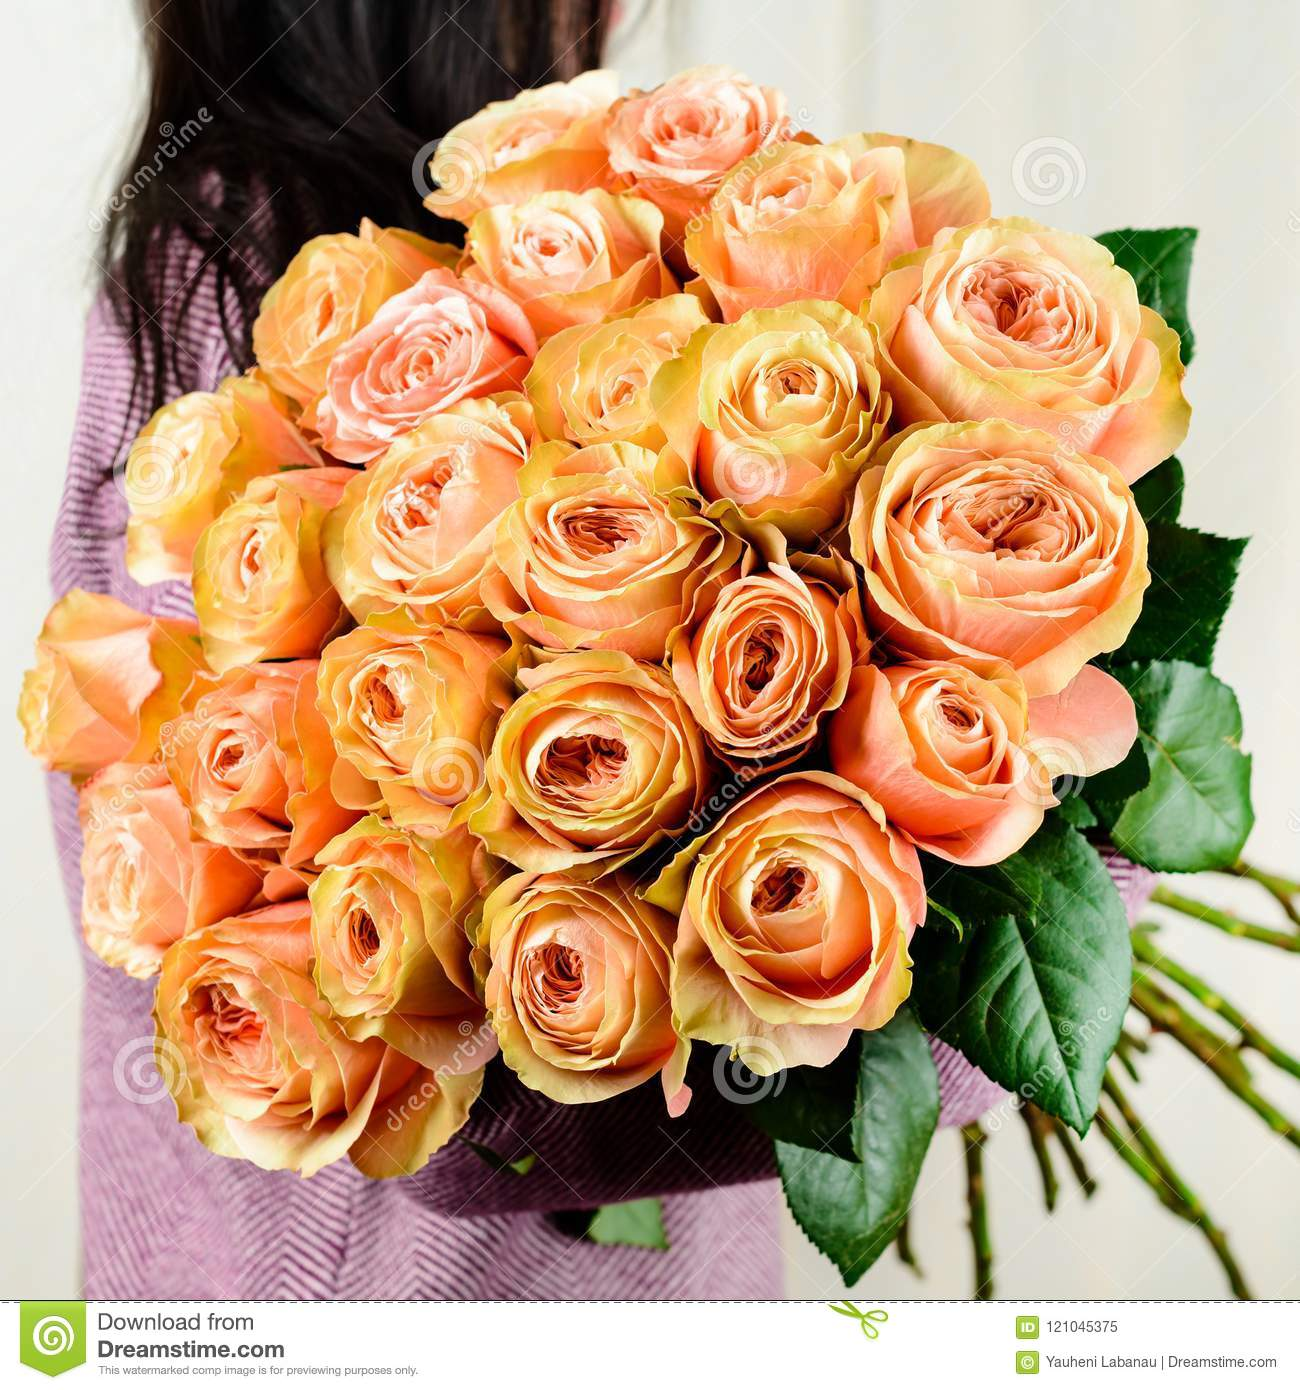 Girl Received Beautiful Bouquet Of Yellow Roses Concept Of Surprise